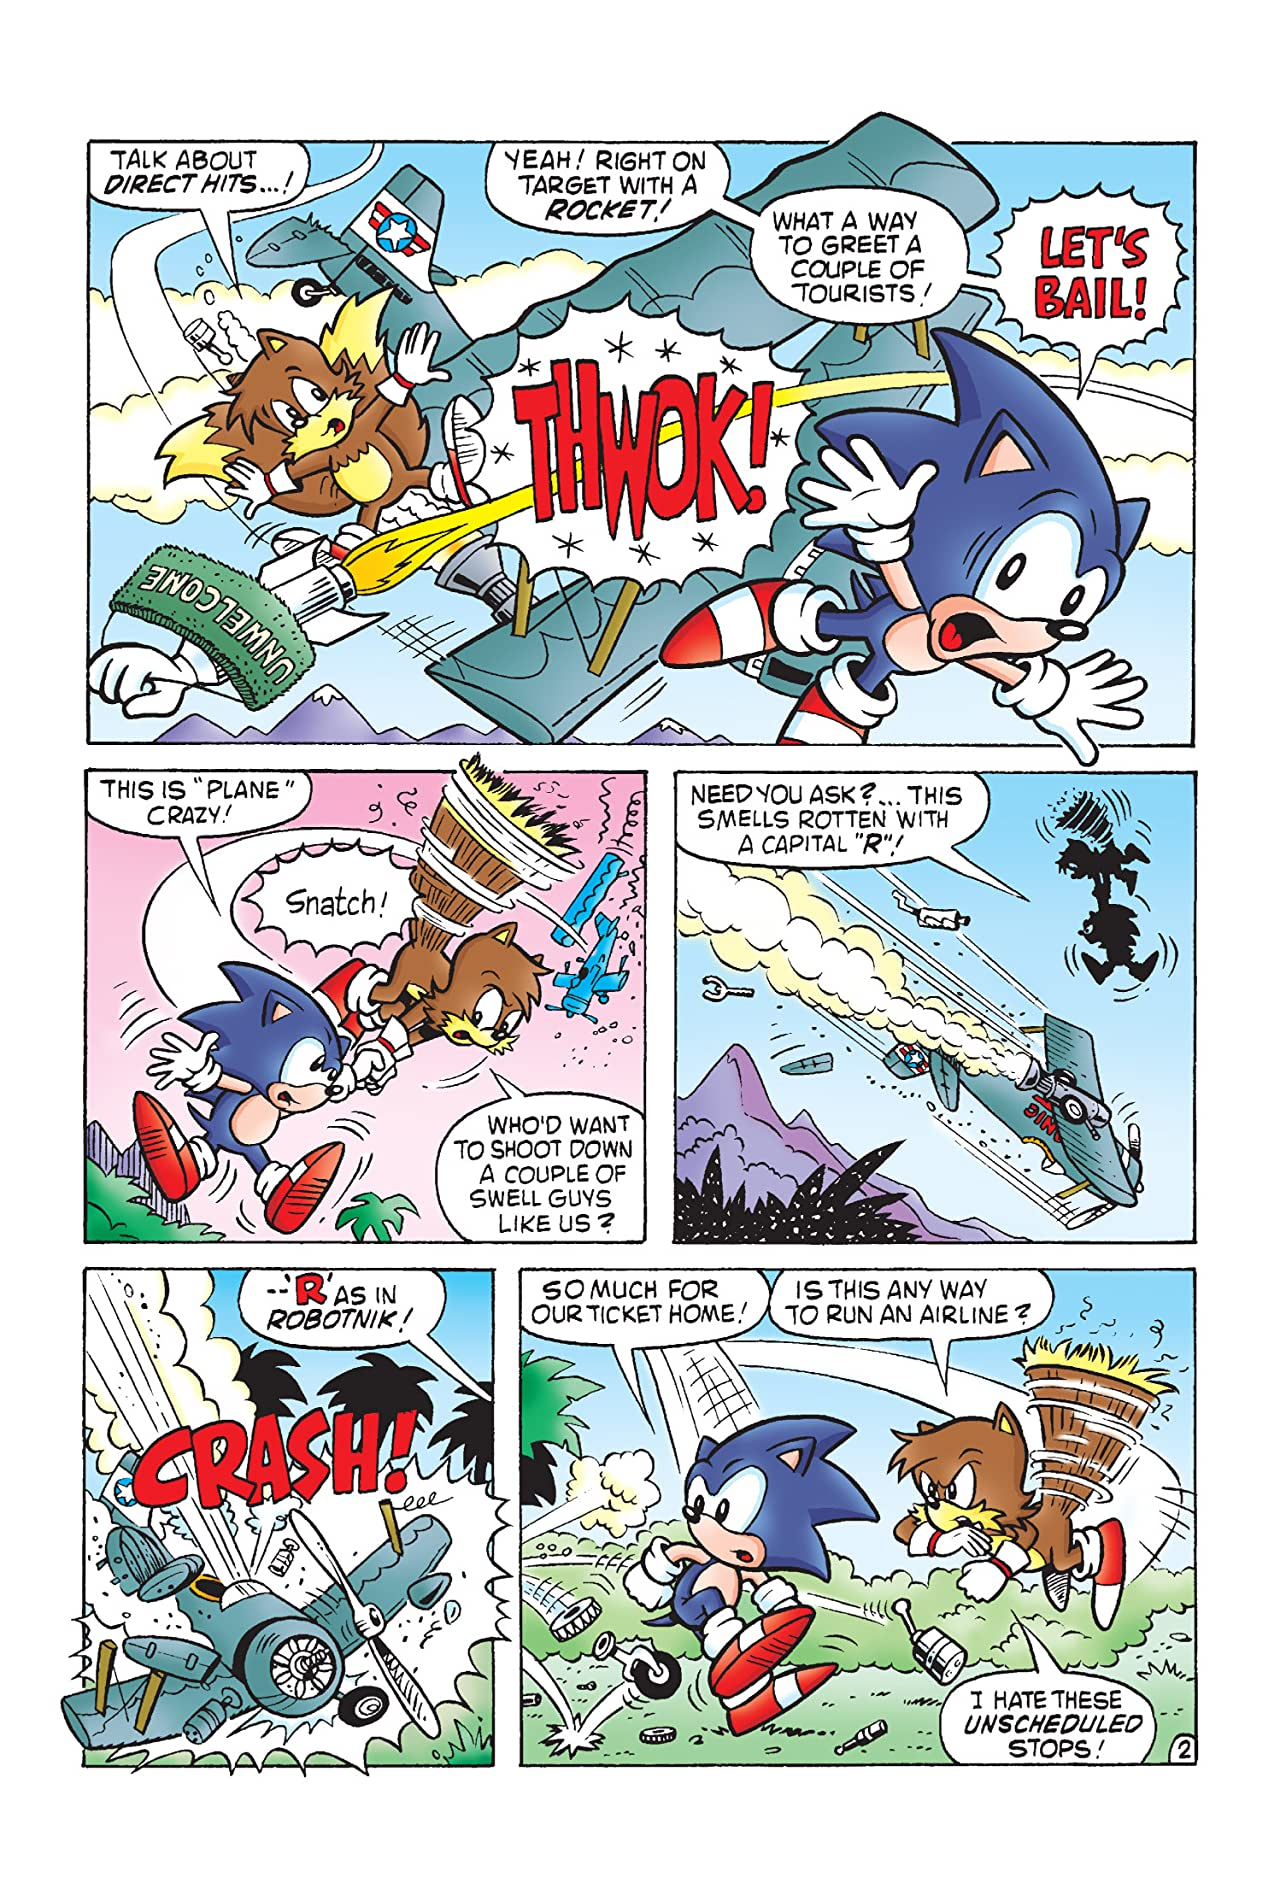 Sonic the Hedgehog #13